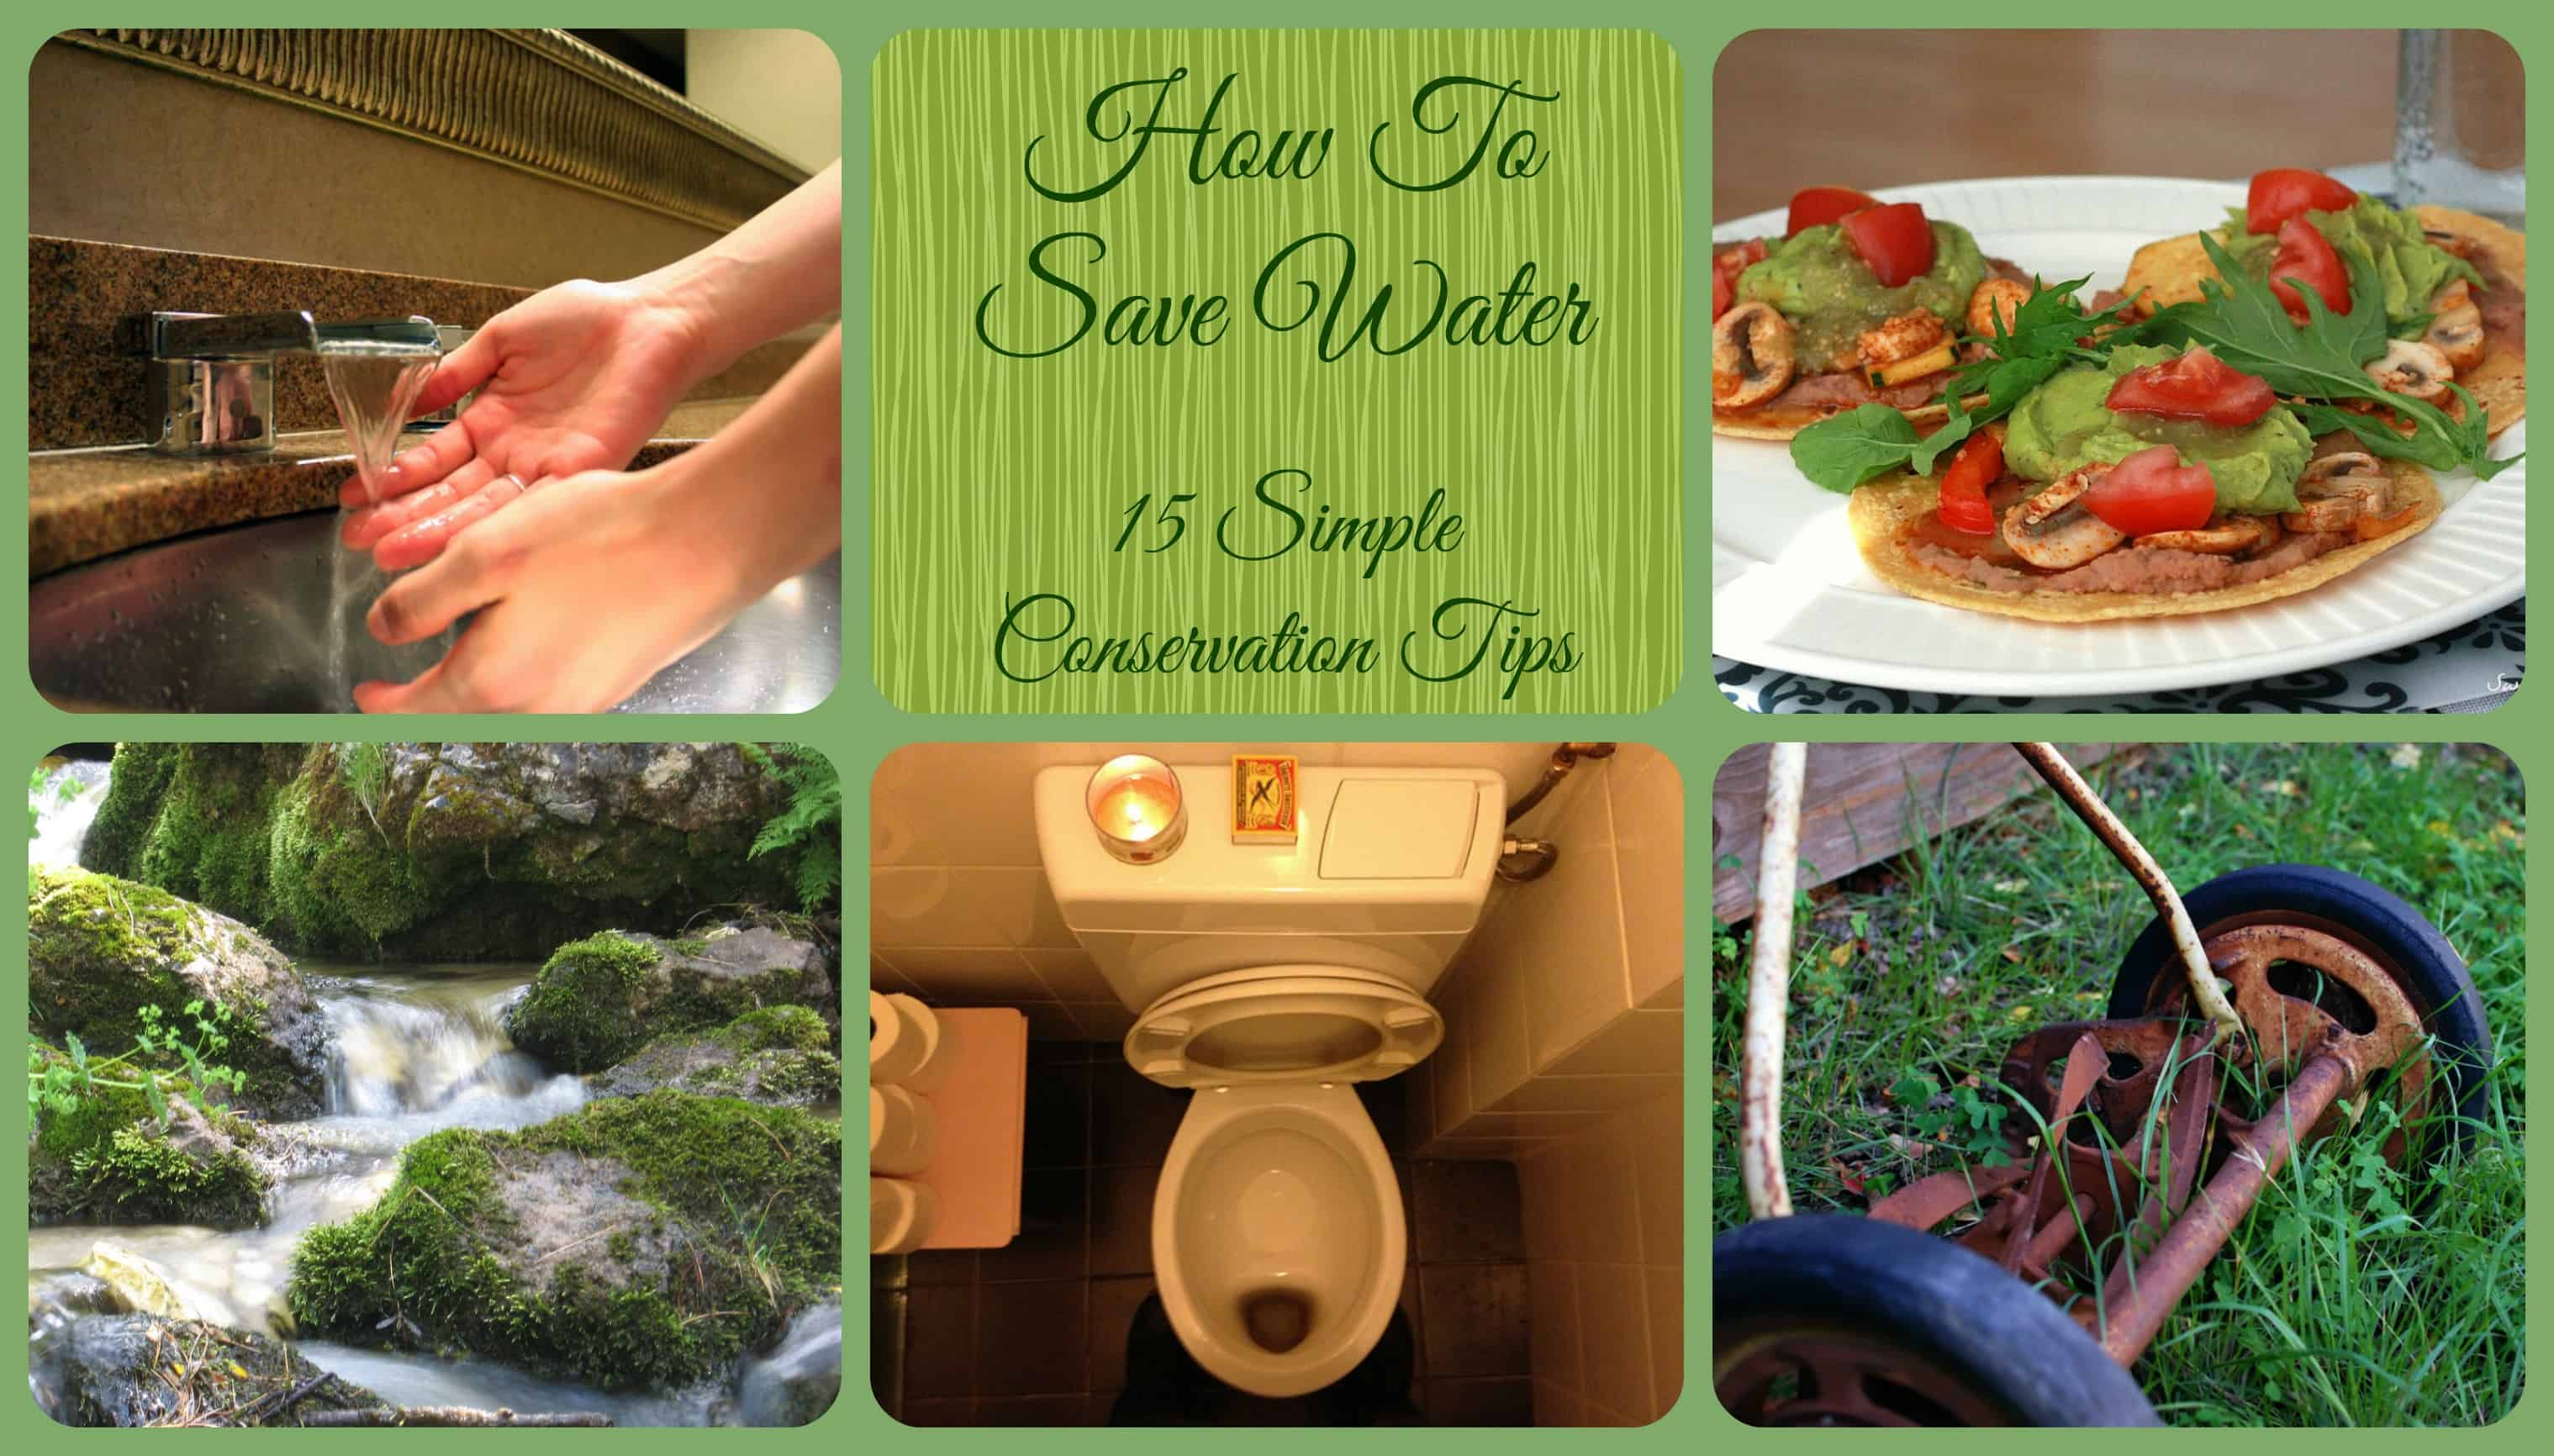 How to Save Water: 15 Simple Conservation Tips